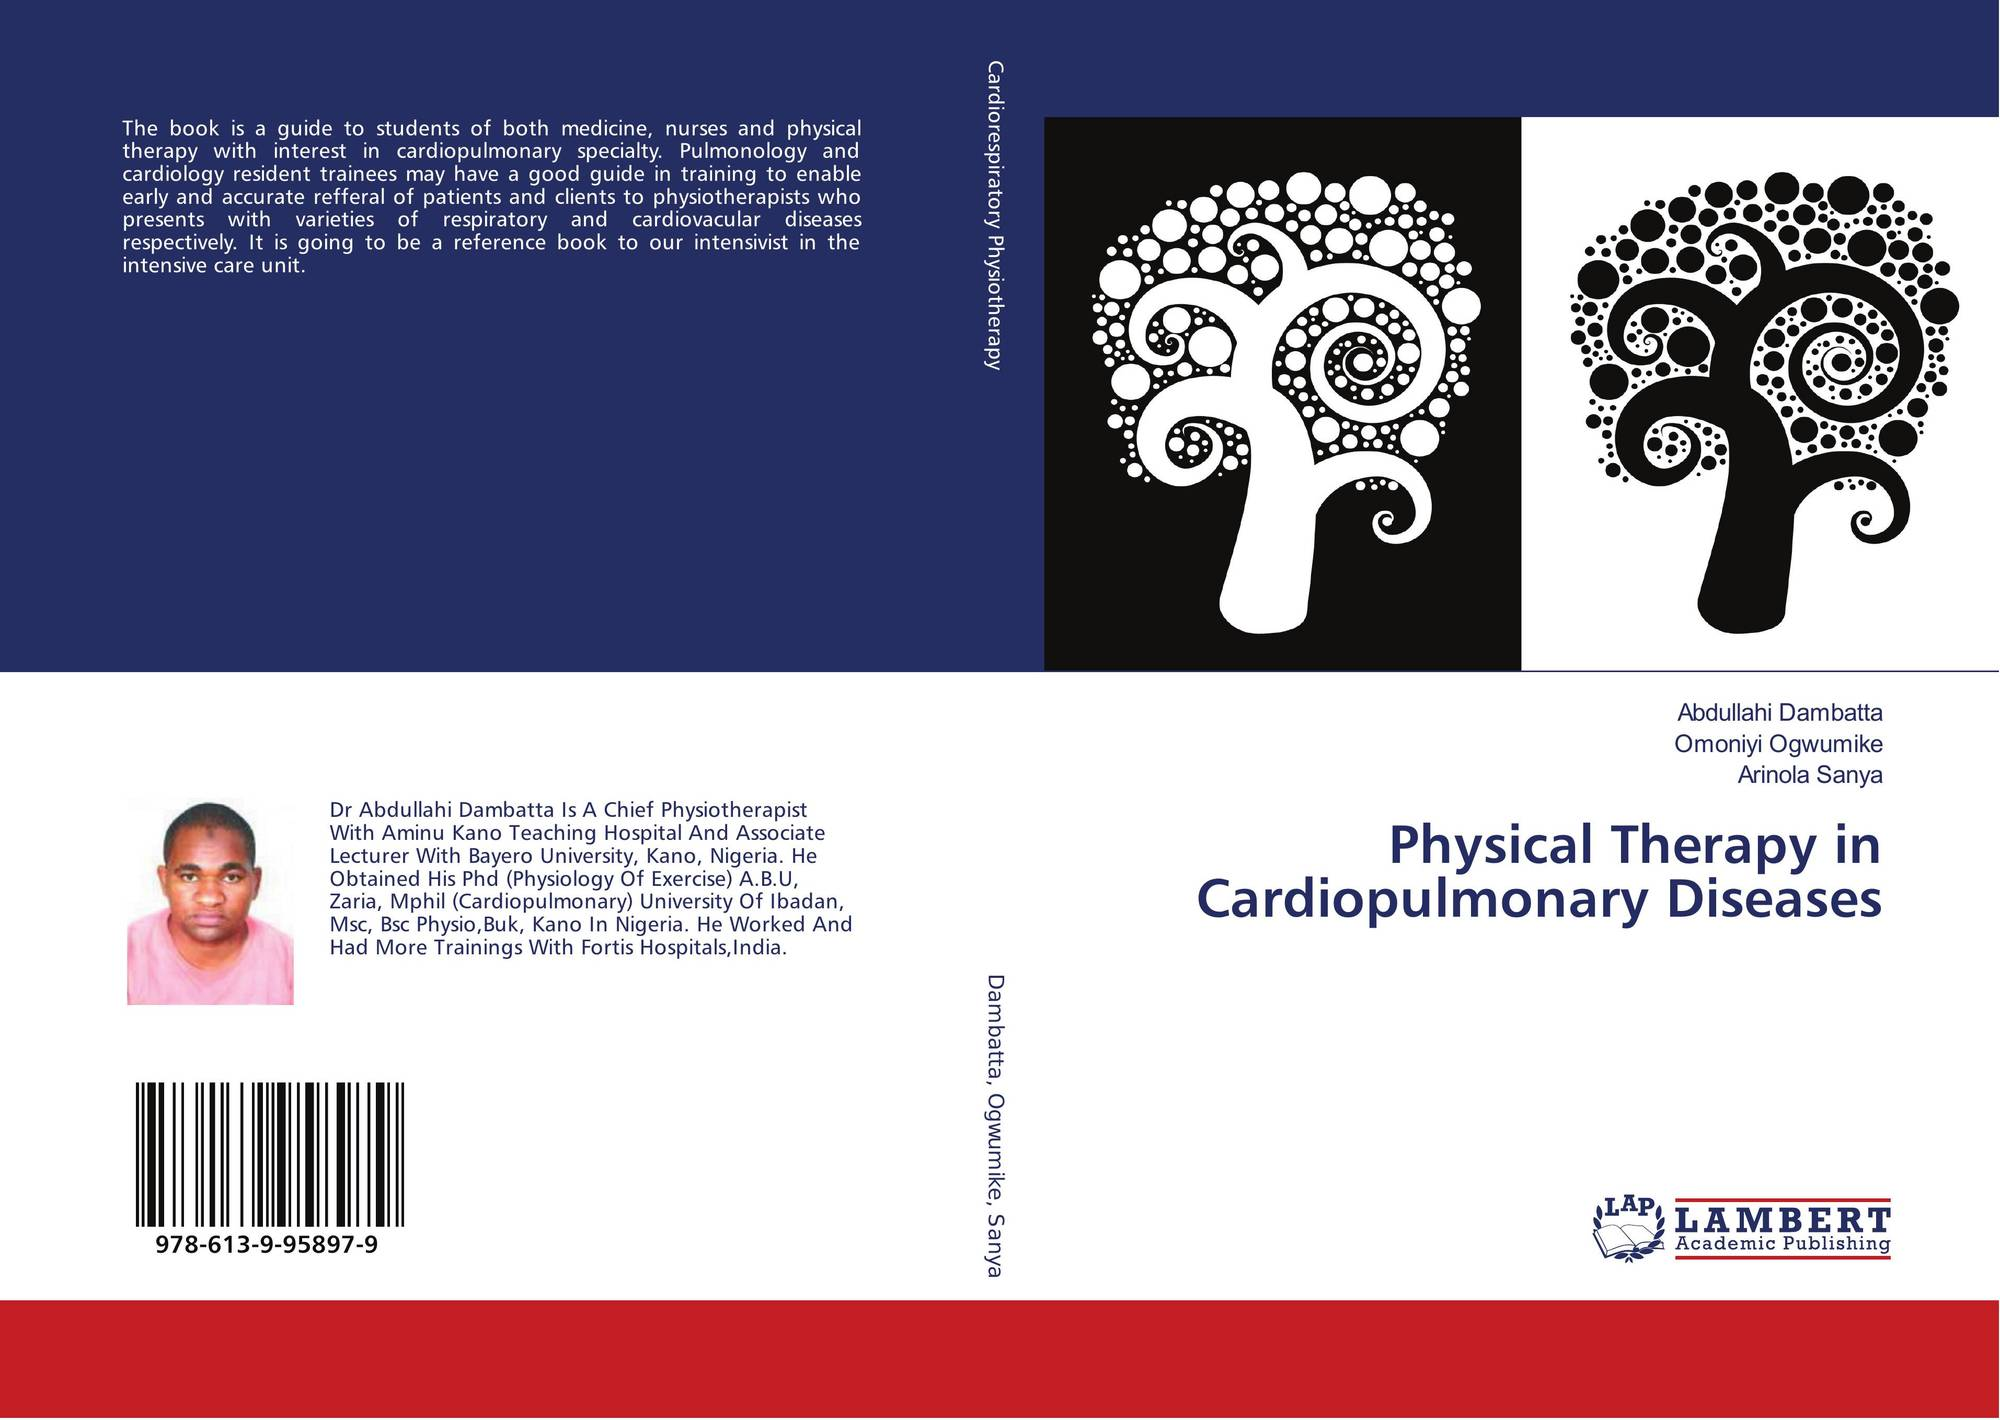 Physical Therapy in Cardiopulmonary Diseases, 978-613-9